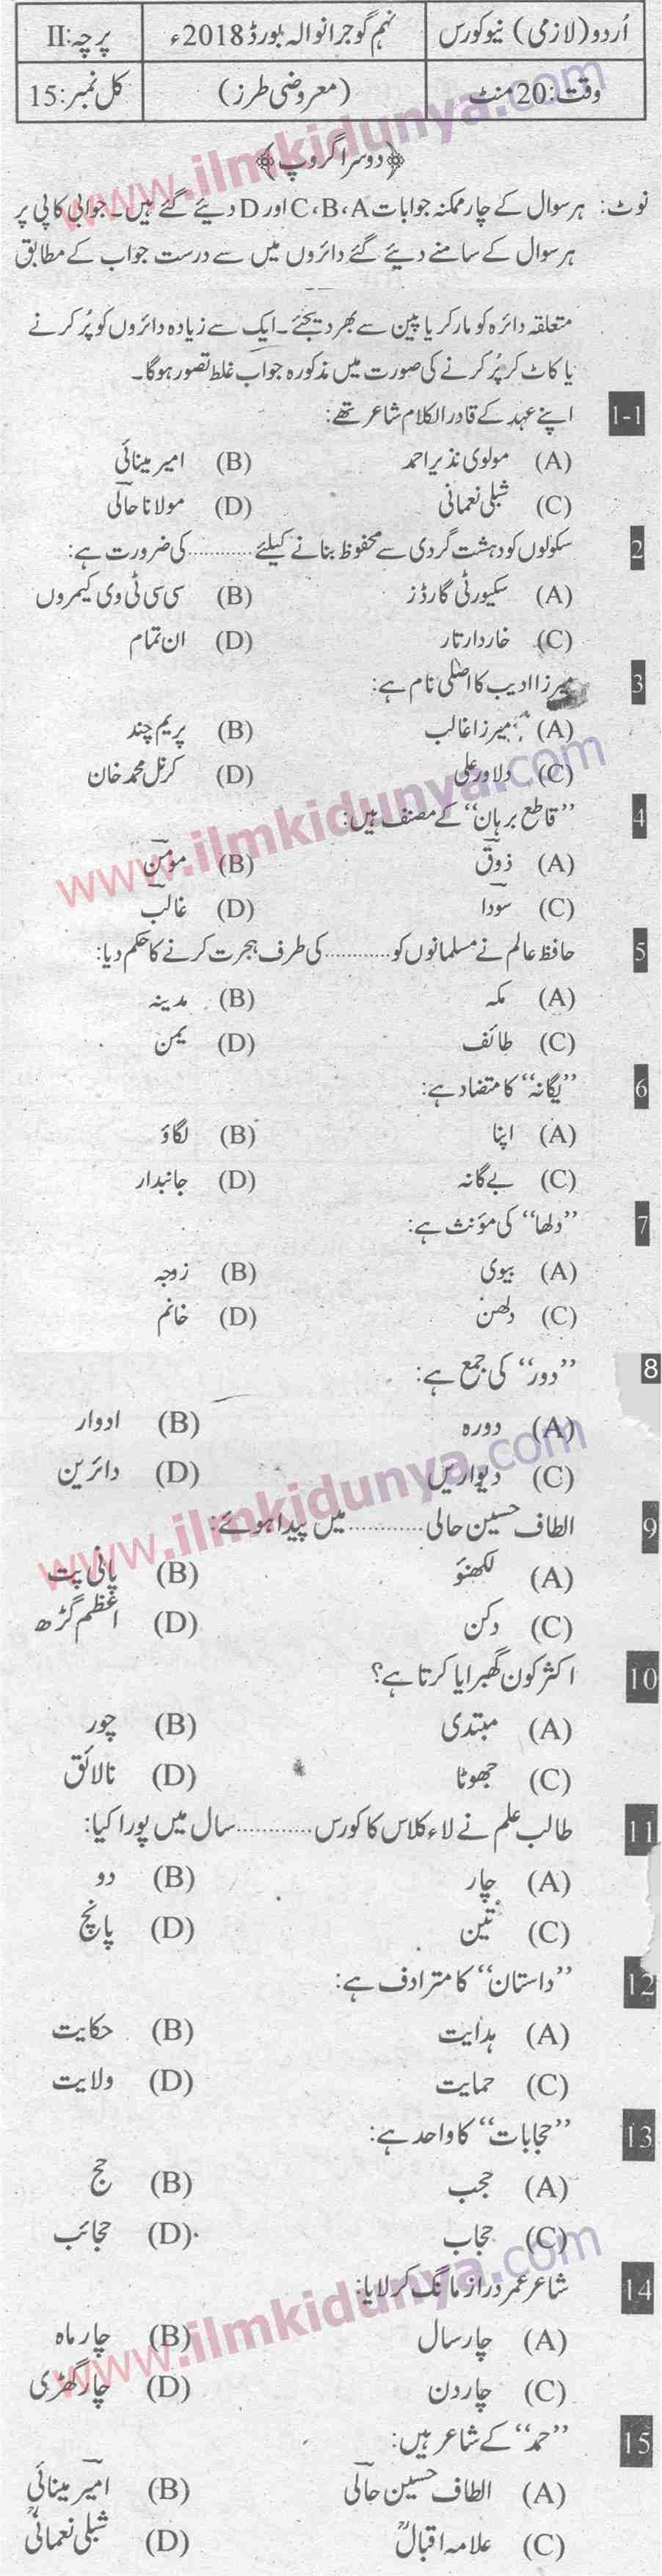 Past Papers 2018 Gujranwala Board 9th Class Urdu Objective Word Problem Worksheets Functions Math Rational Function